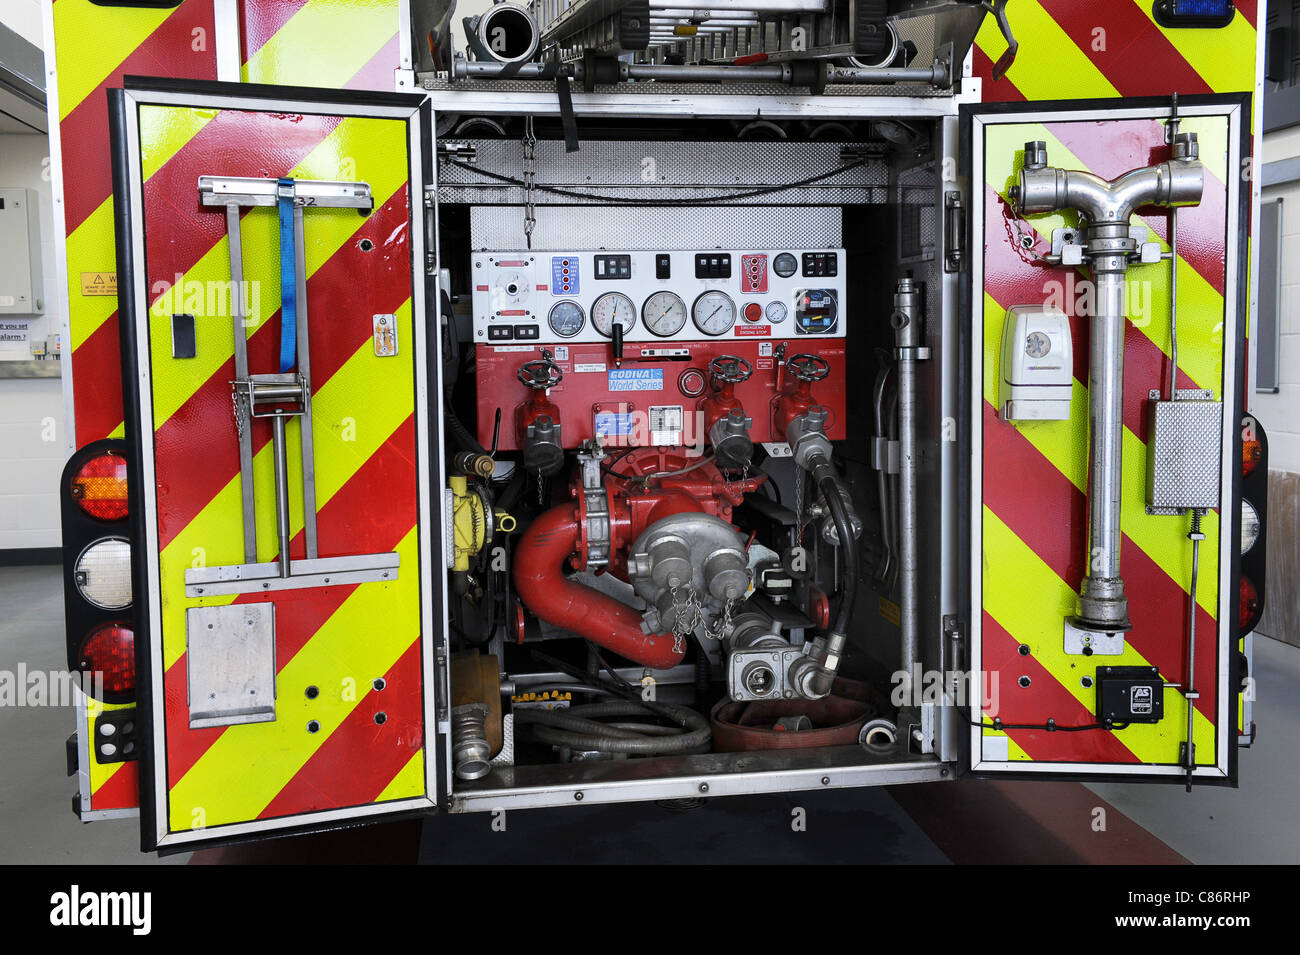 Staffordshire Fire Service fire engine appliance pumps - Stock Image